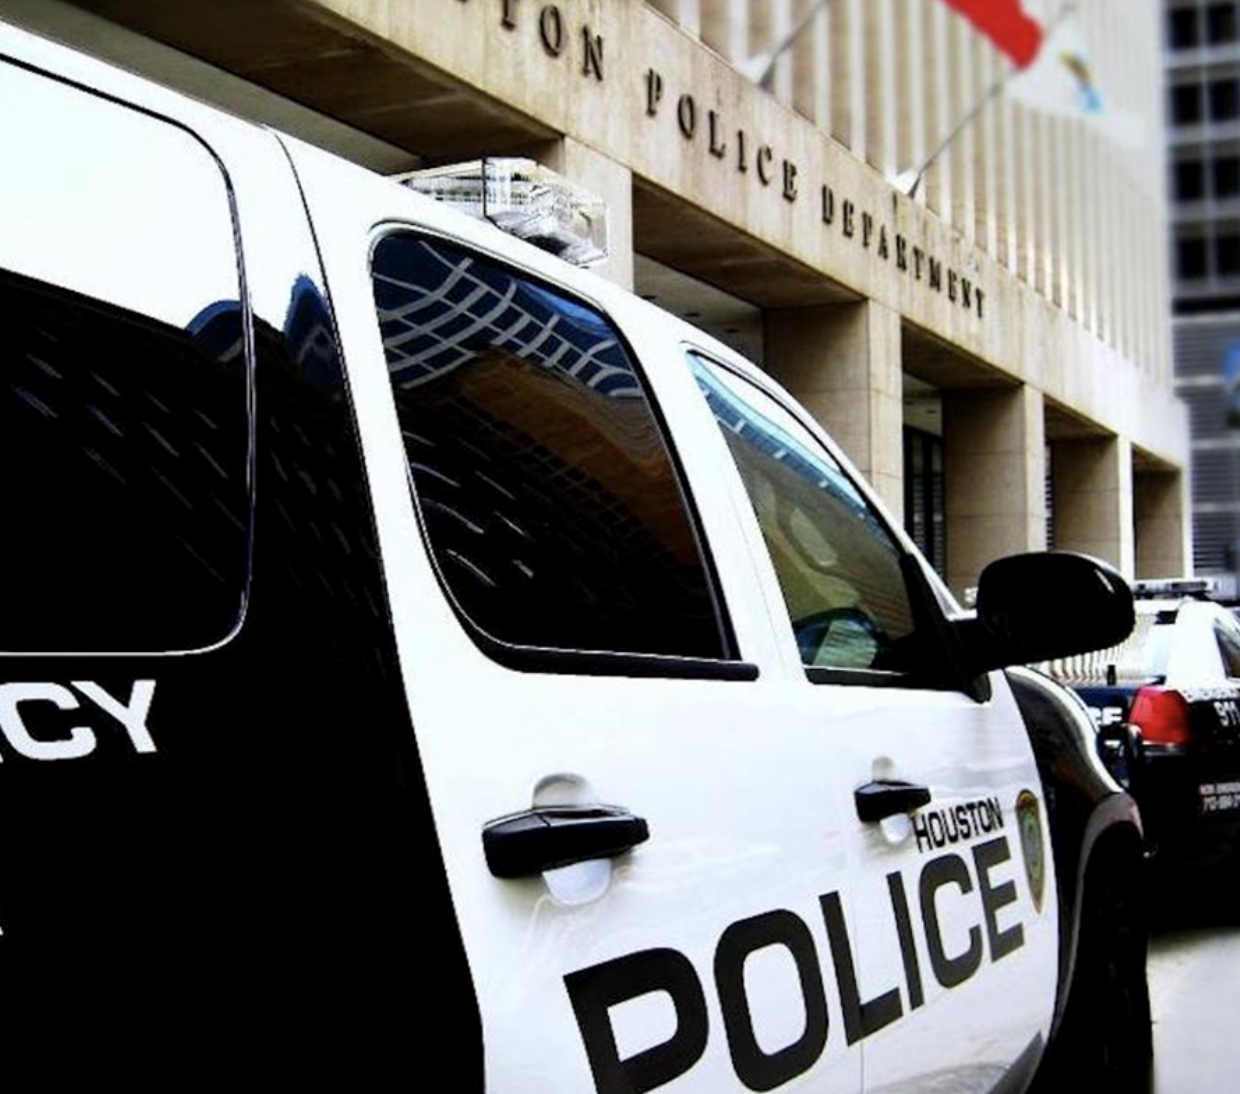 Houston Police Department - • General non-emergencies - 713-884-3131• Central Division Patrol Station - 713-247-4400• Robbery -713-308-0700• Hit &Run - 713-247-4072• Burglary &Theft - 713-869-7722• Burglary Motor Vehicle or Auto Theft - 713-755-5200• Crime Stoppers (Incident Info. & Tips) - 713-222-8477• Missing Persons (Adults) - 832-394-1840Click here to access Houston's Police Department Website